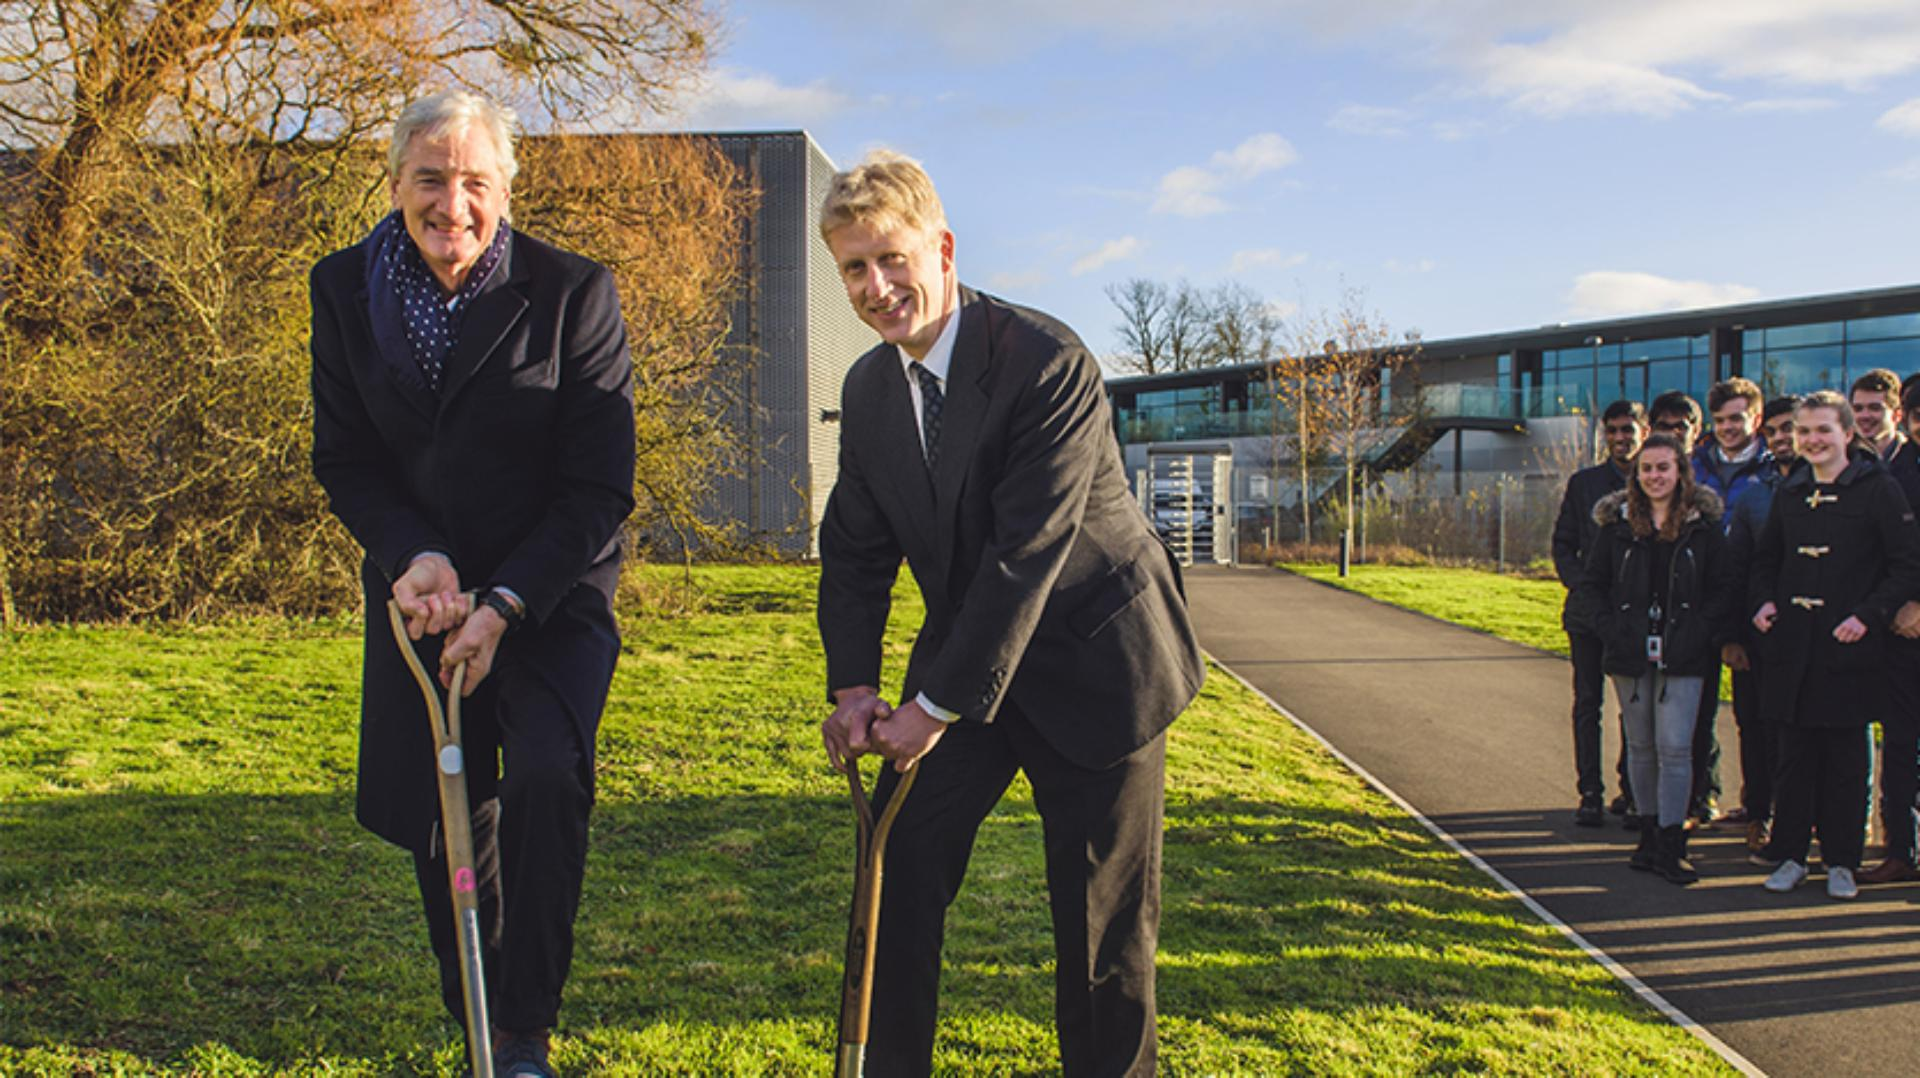 James Dyson and Jo Johnson at the breaking ground ceremony